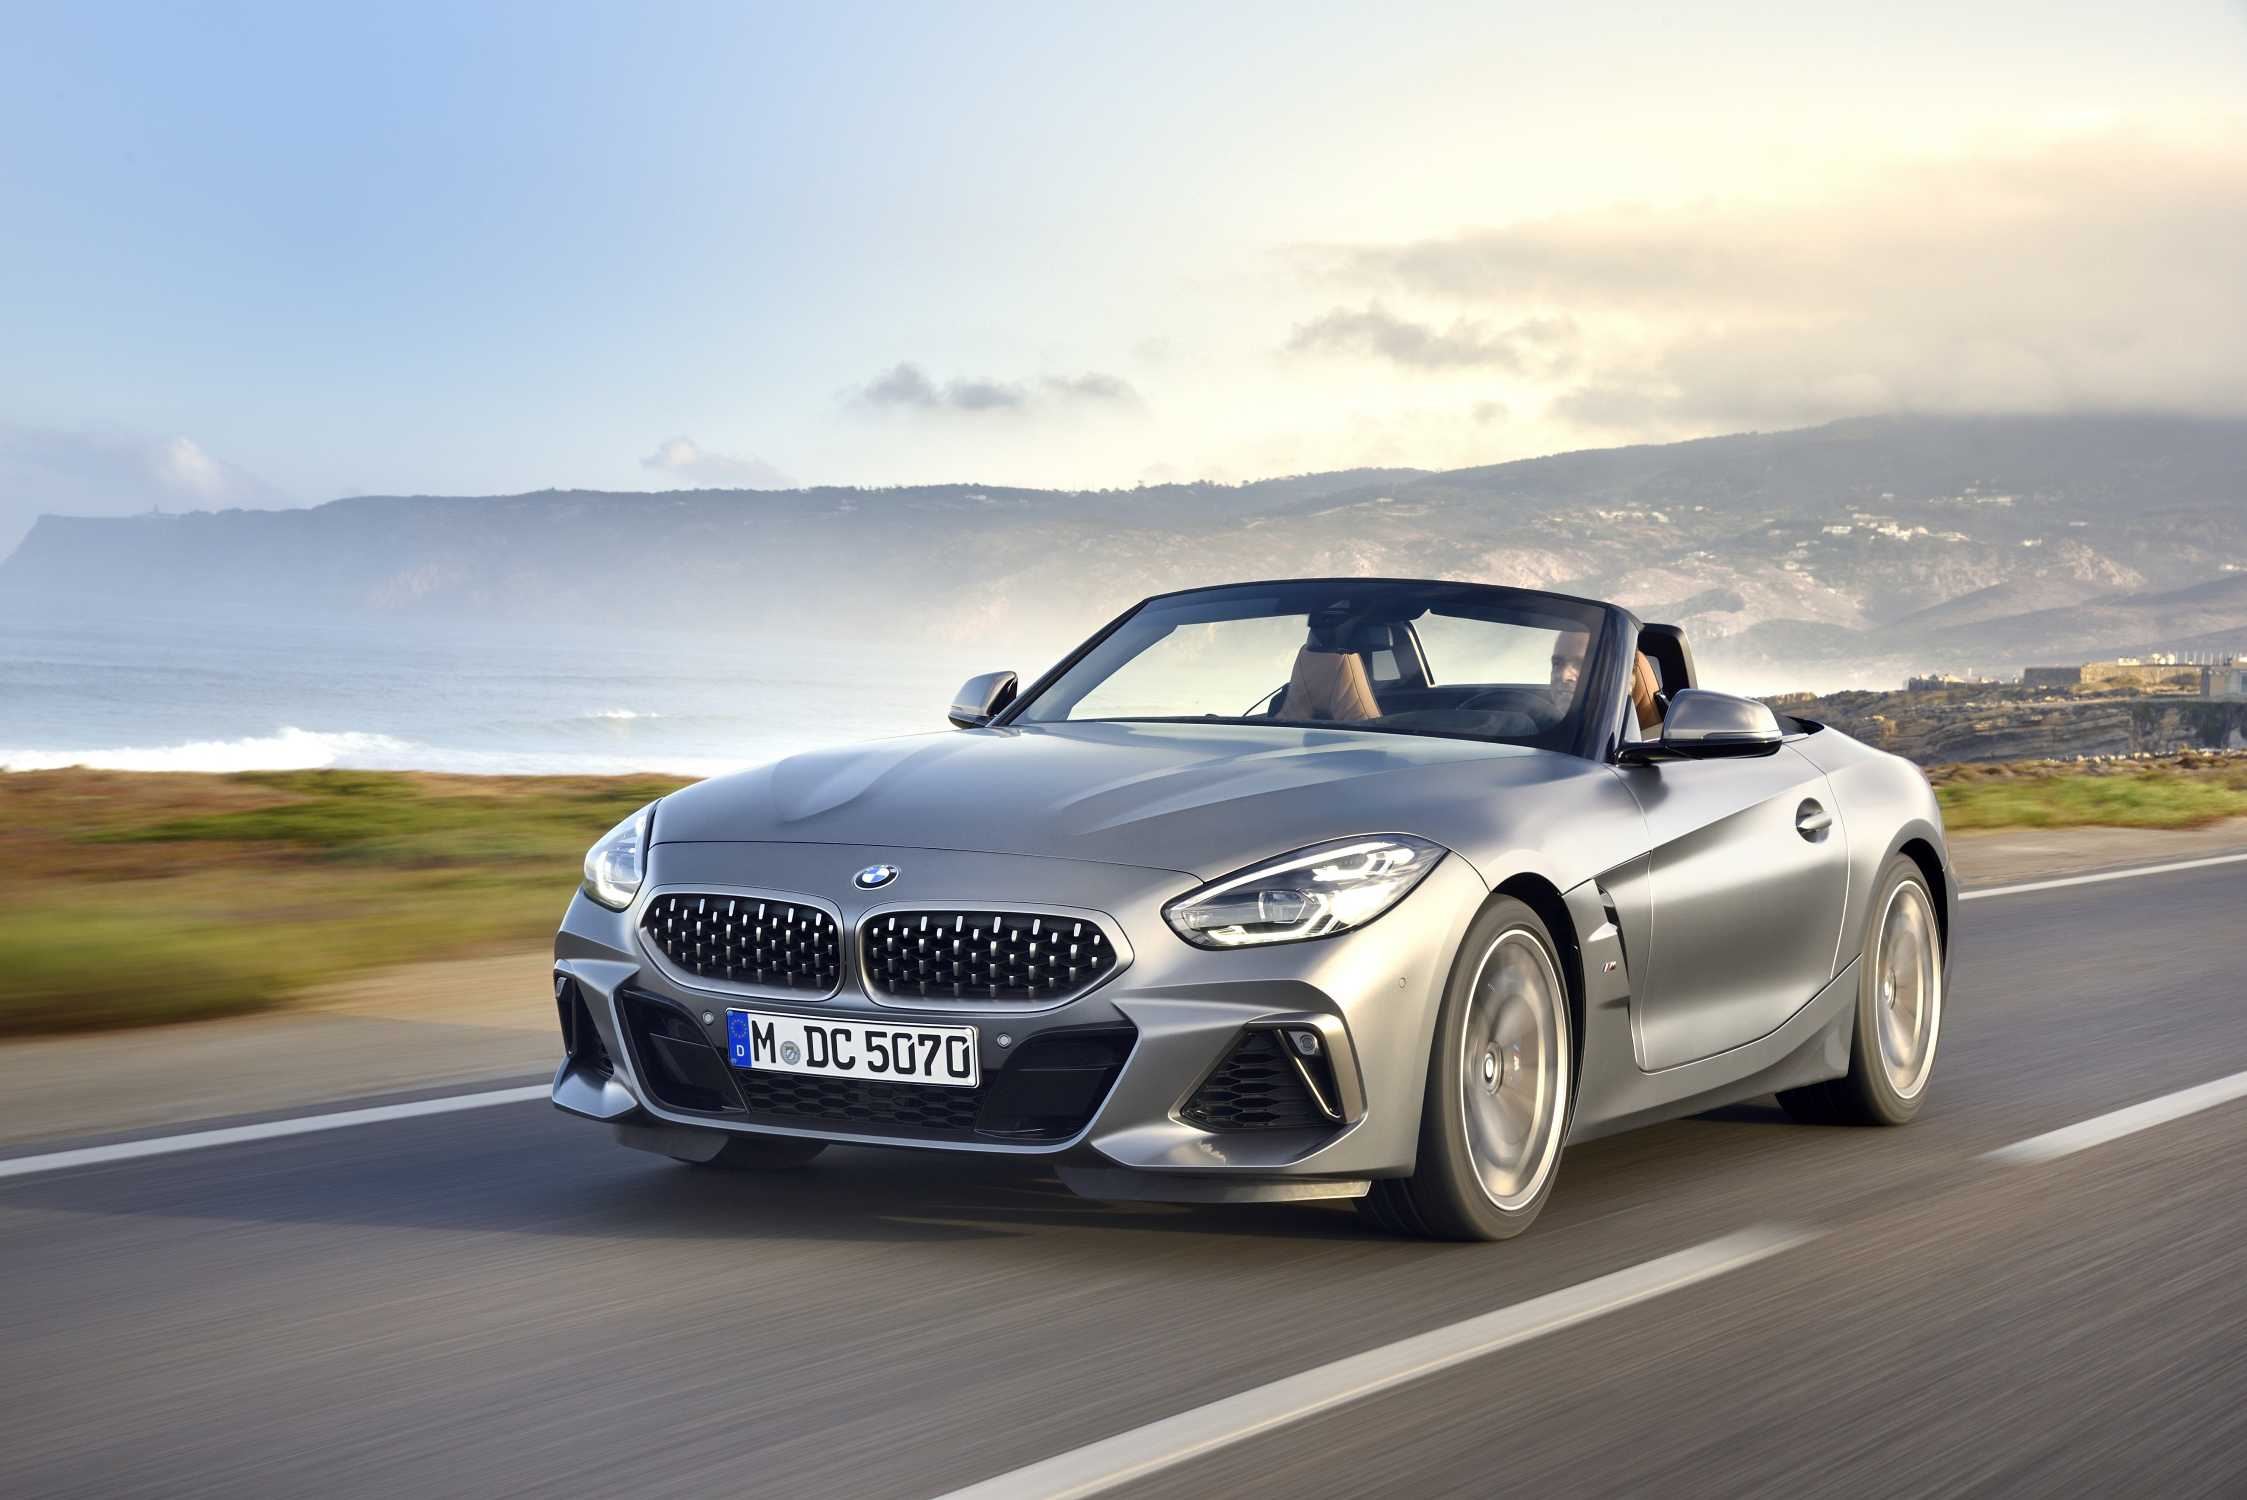 "The new BMW Z4 M40i Roadster in color Frozen Grey II metallic and 19"" M light alloy wheels Double-spoke style 800 M Bicolour - Lissabon / Sintra (11/ 2018)."